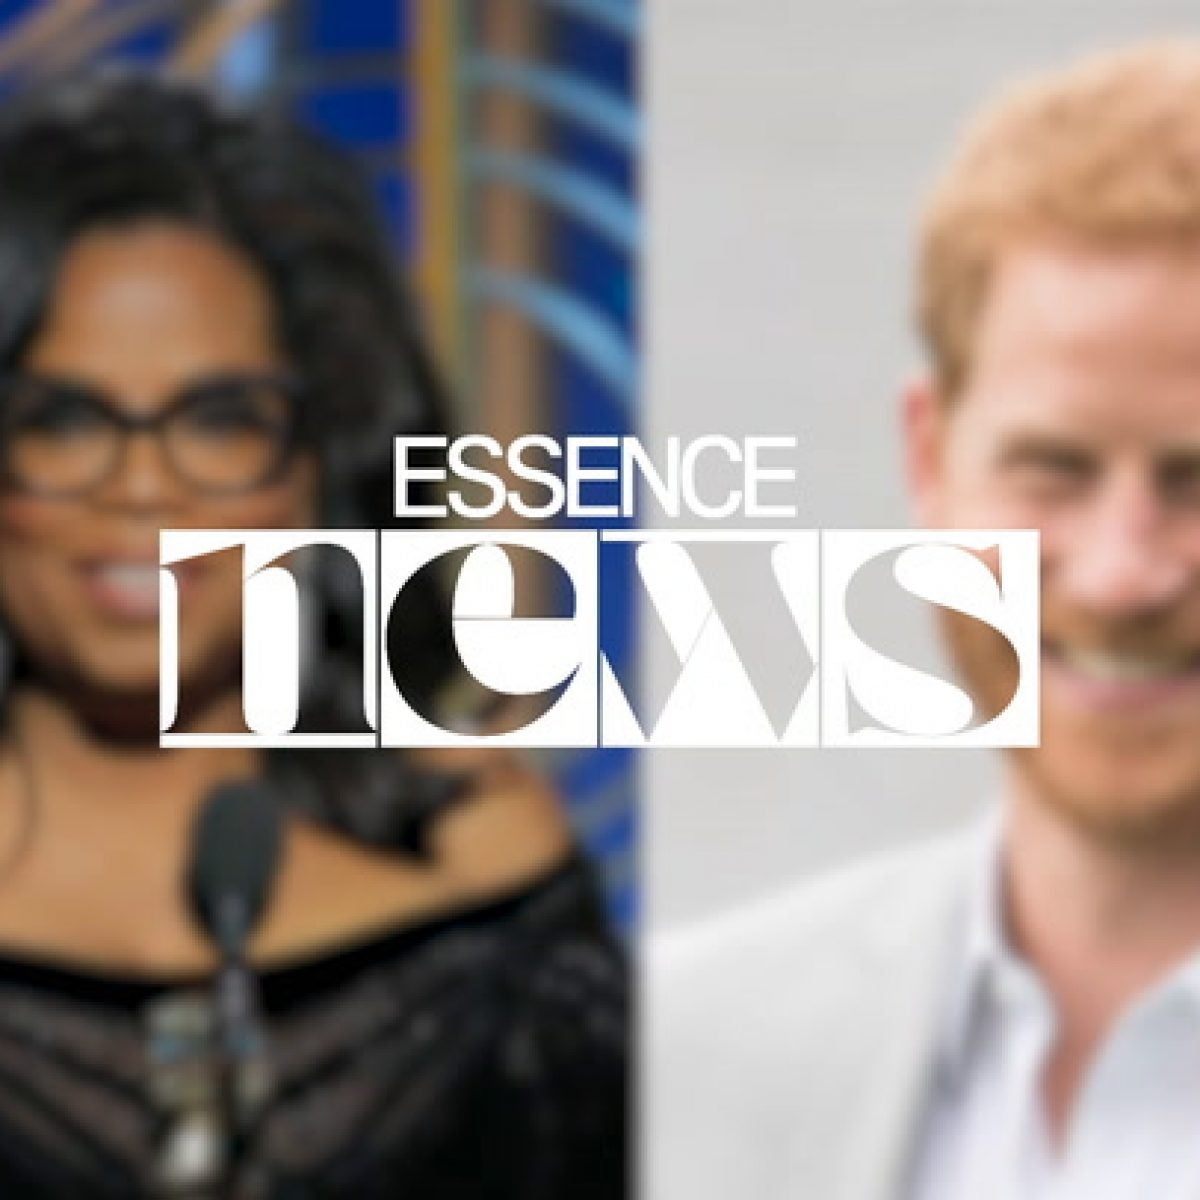 Essence Chats with Oprah and Prince Harry